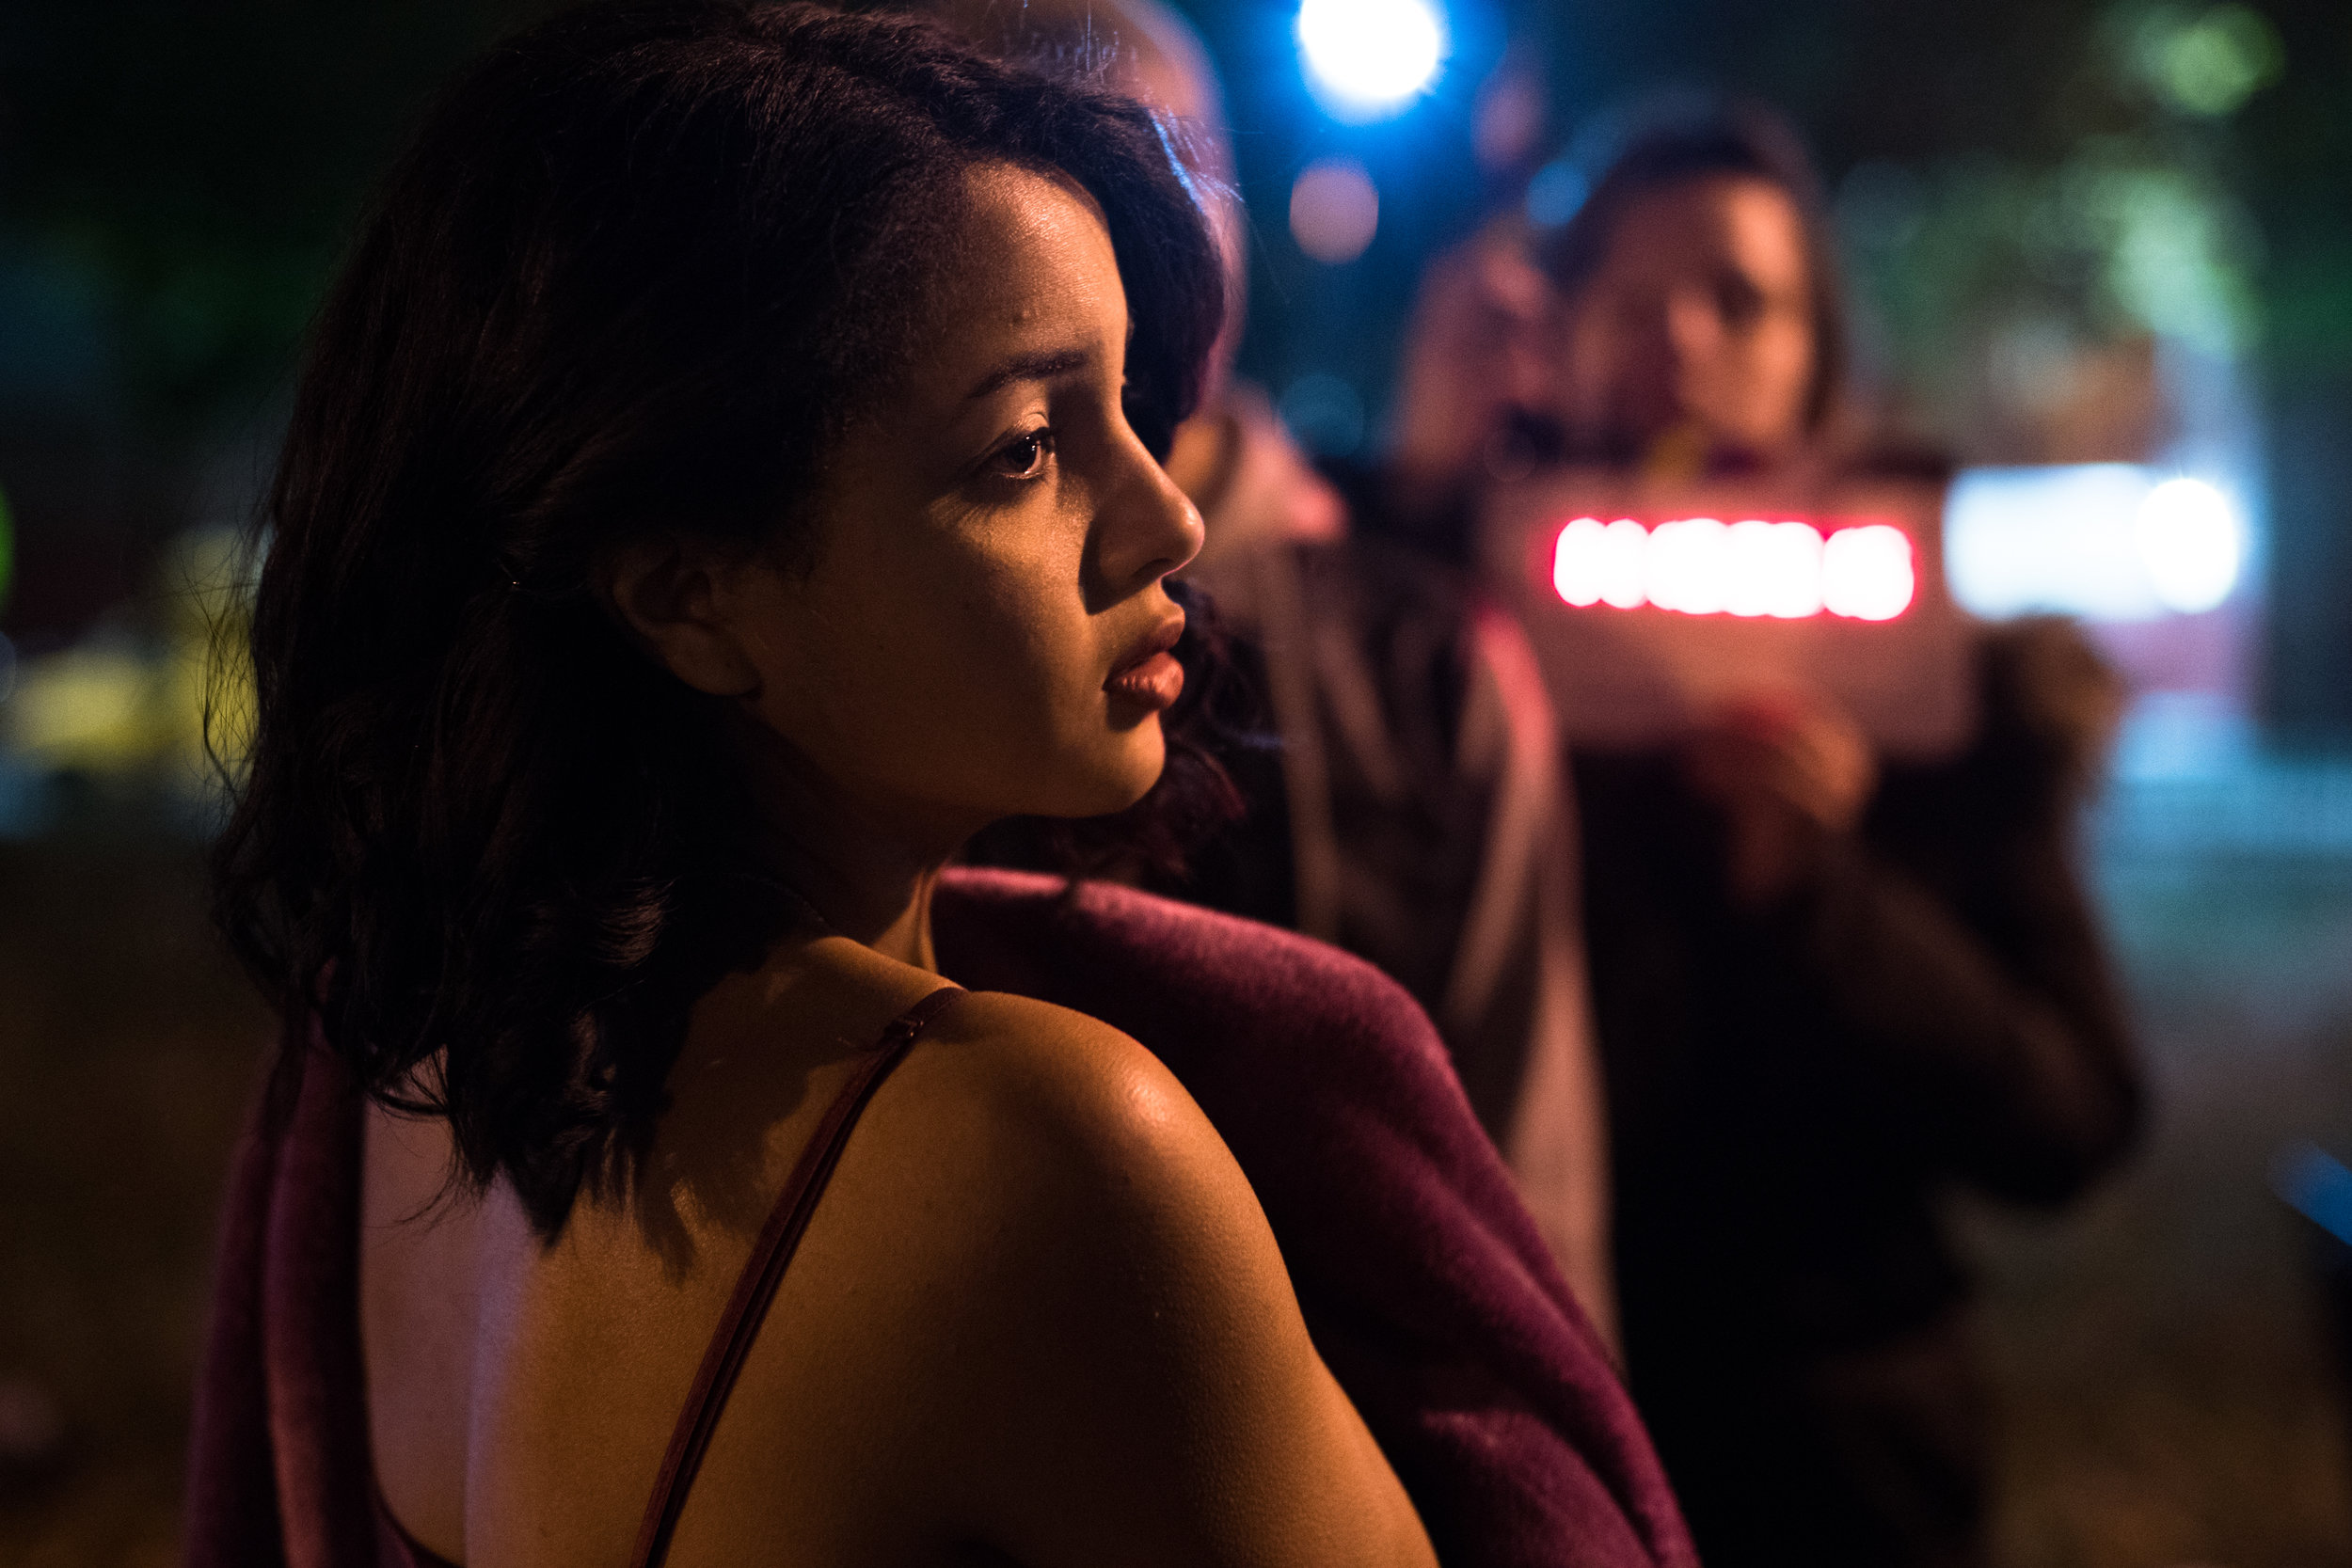 actress Crystal de la Cruz gets ready to go into a take